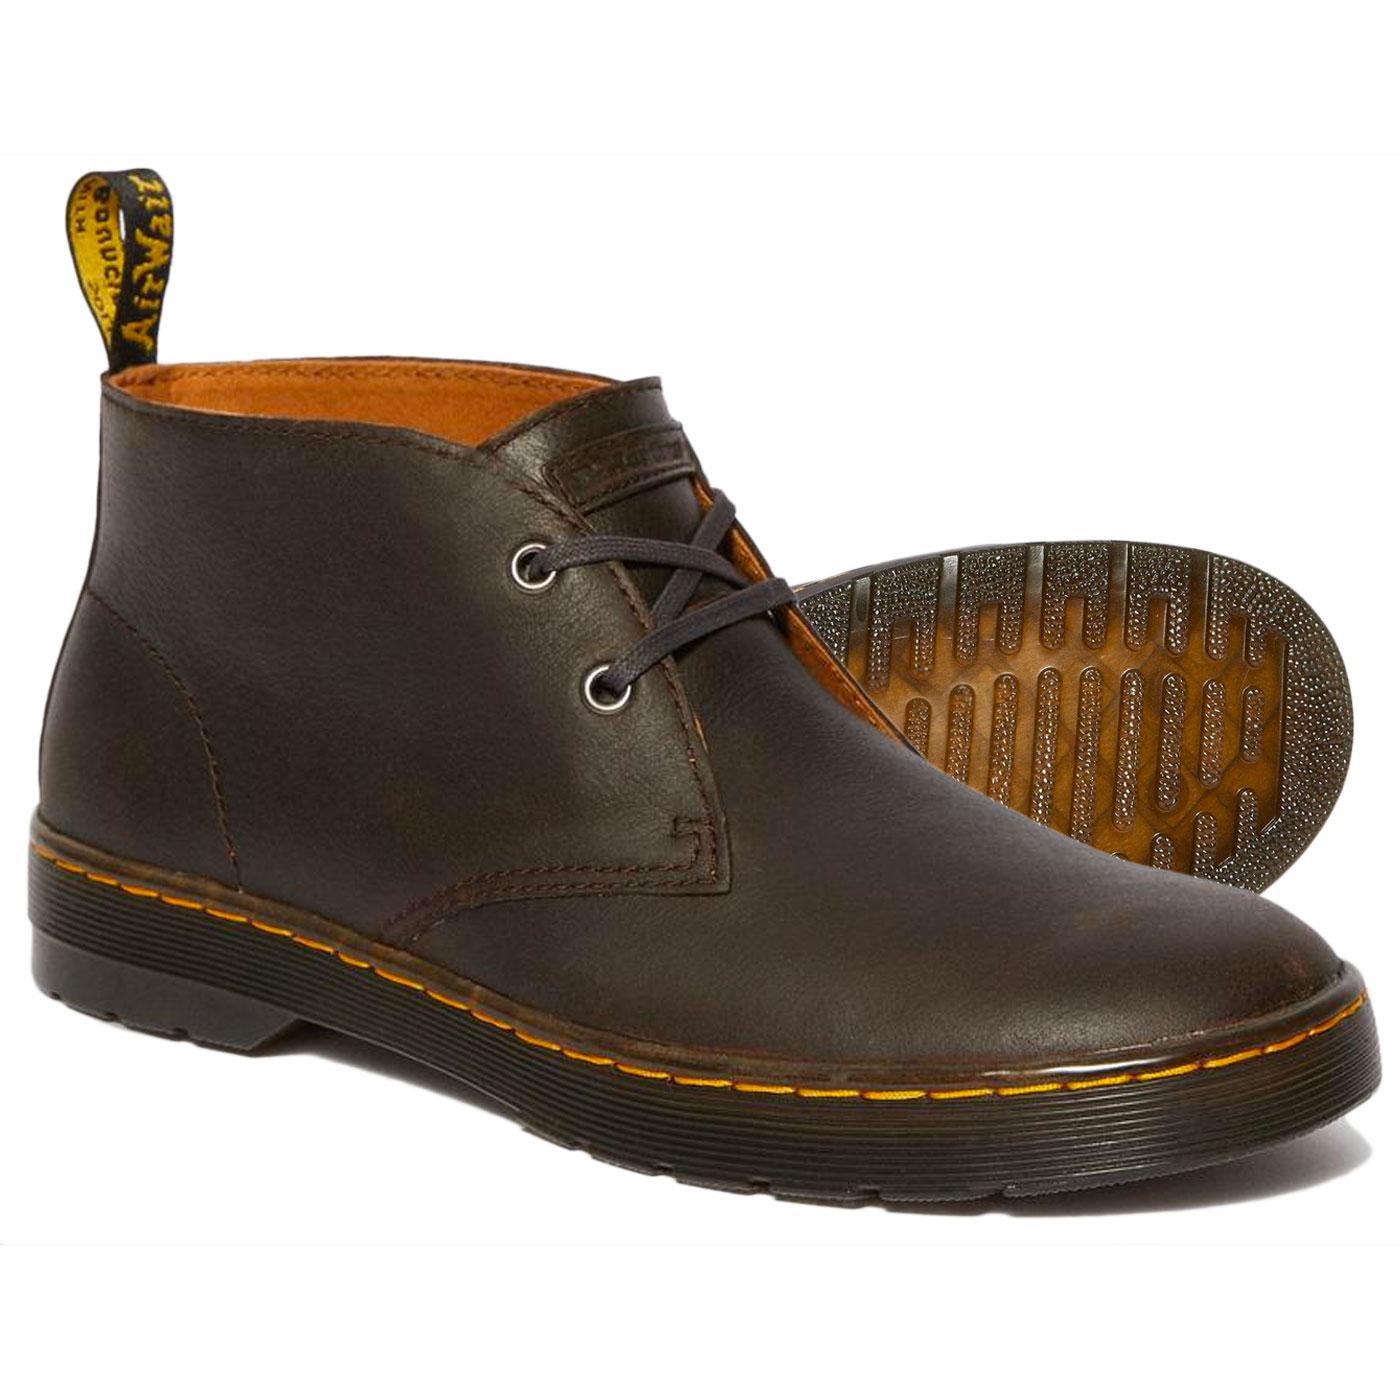 mens size 9 doc martens suede chukka boots